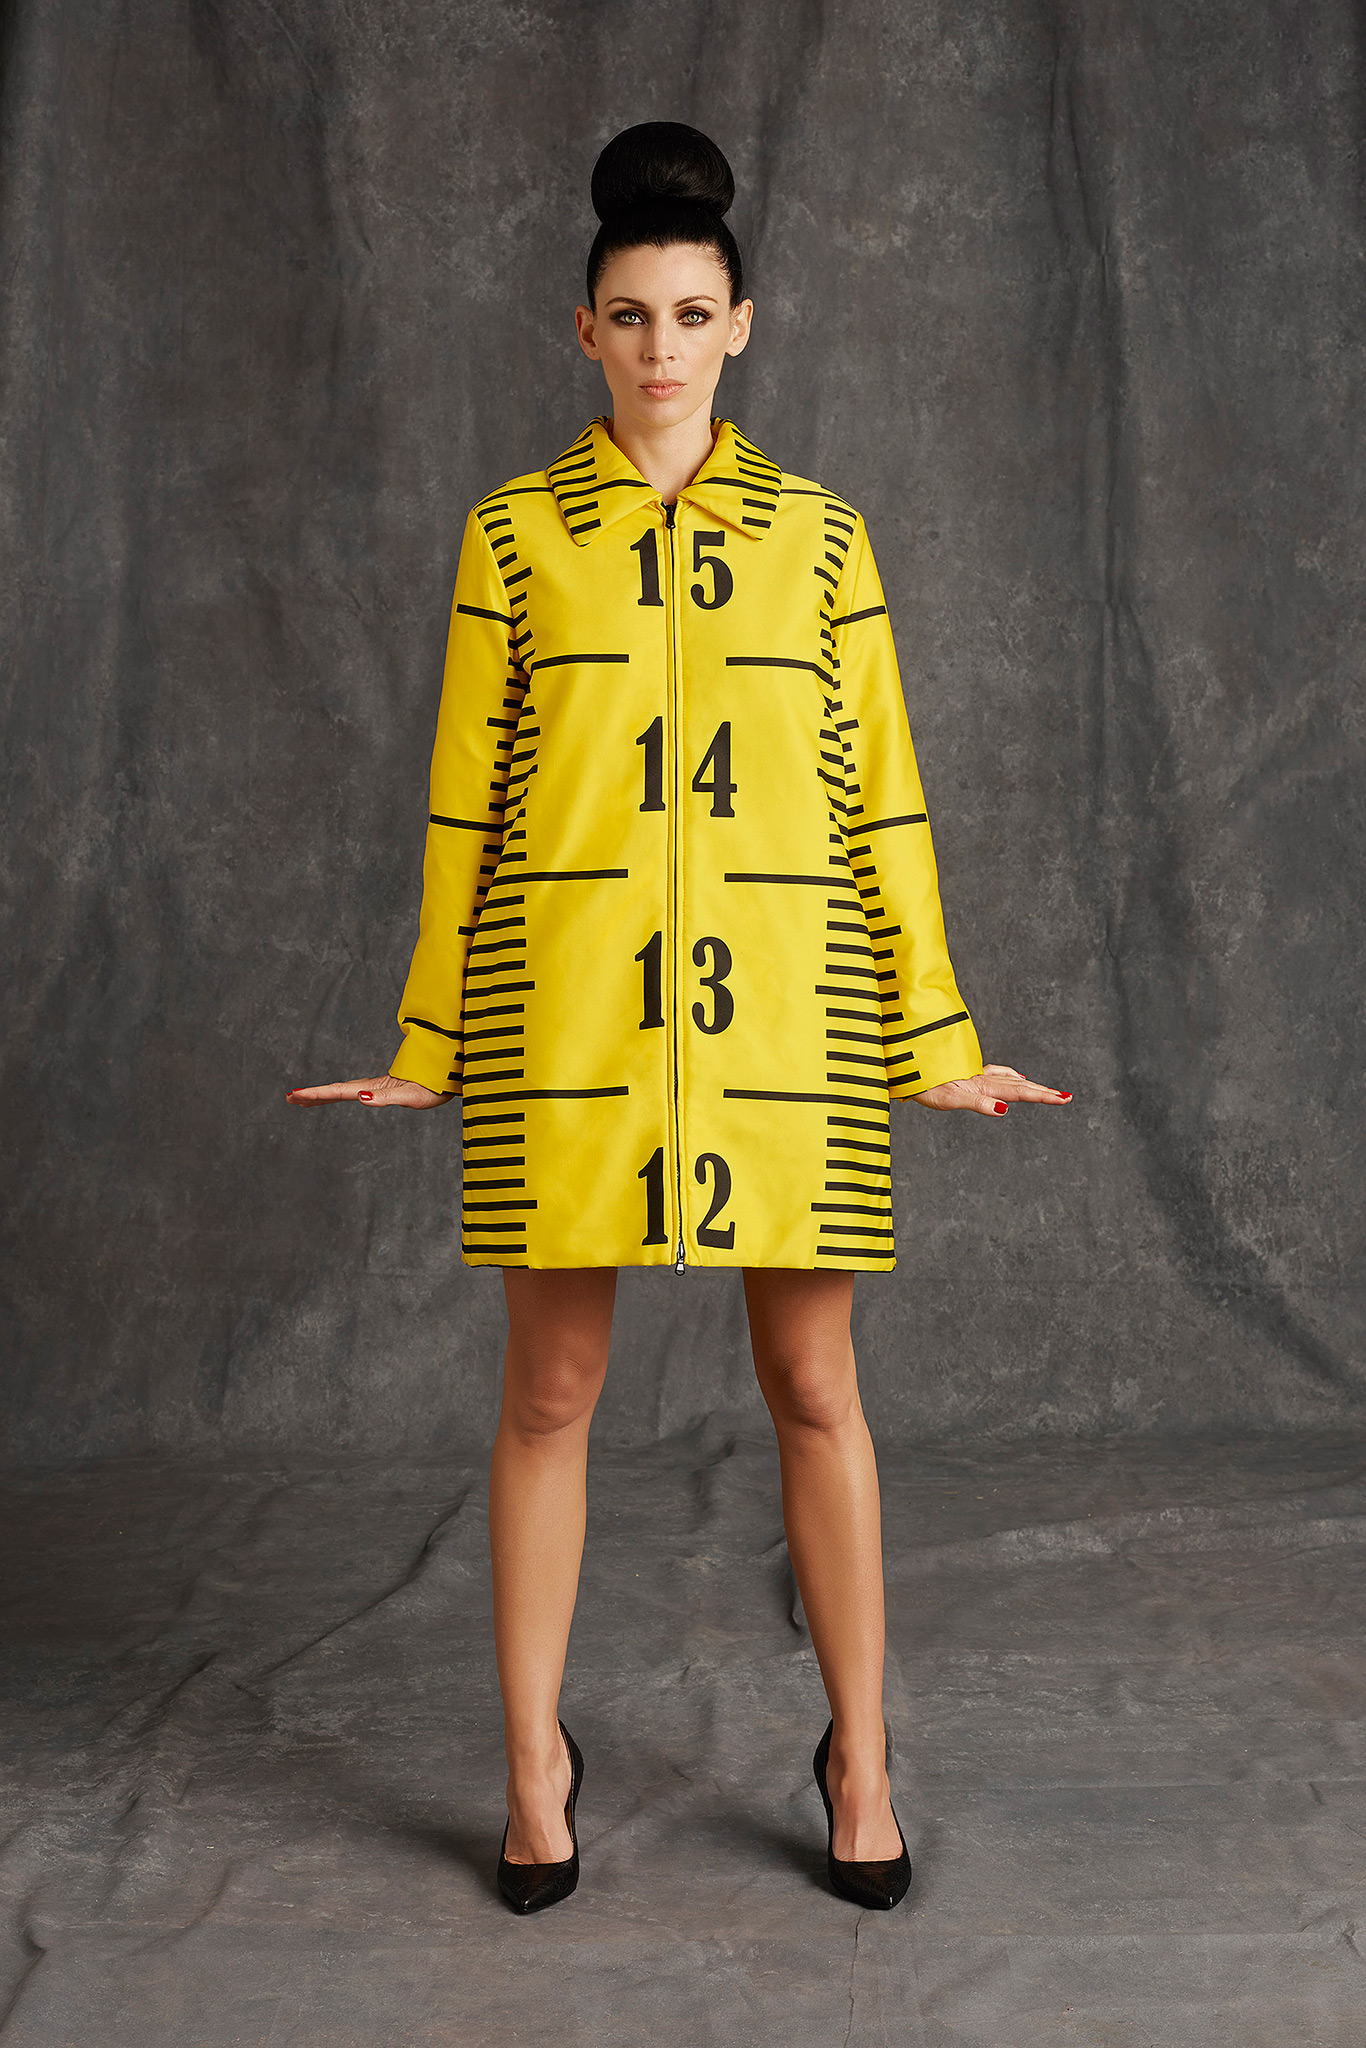 Moschino pre-fall 2015 we fashion trends _18_1366